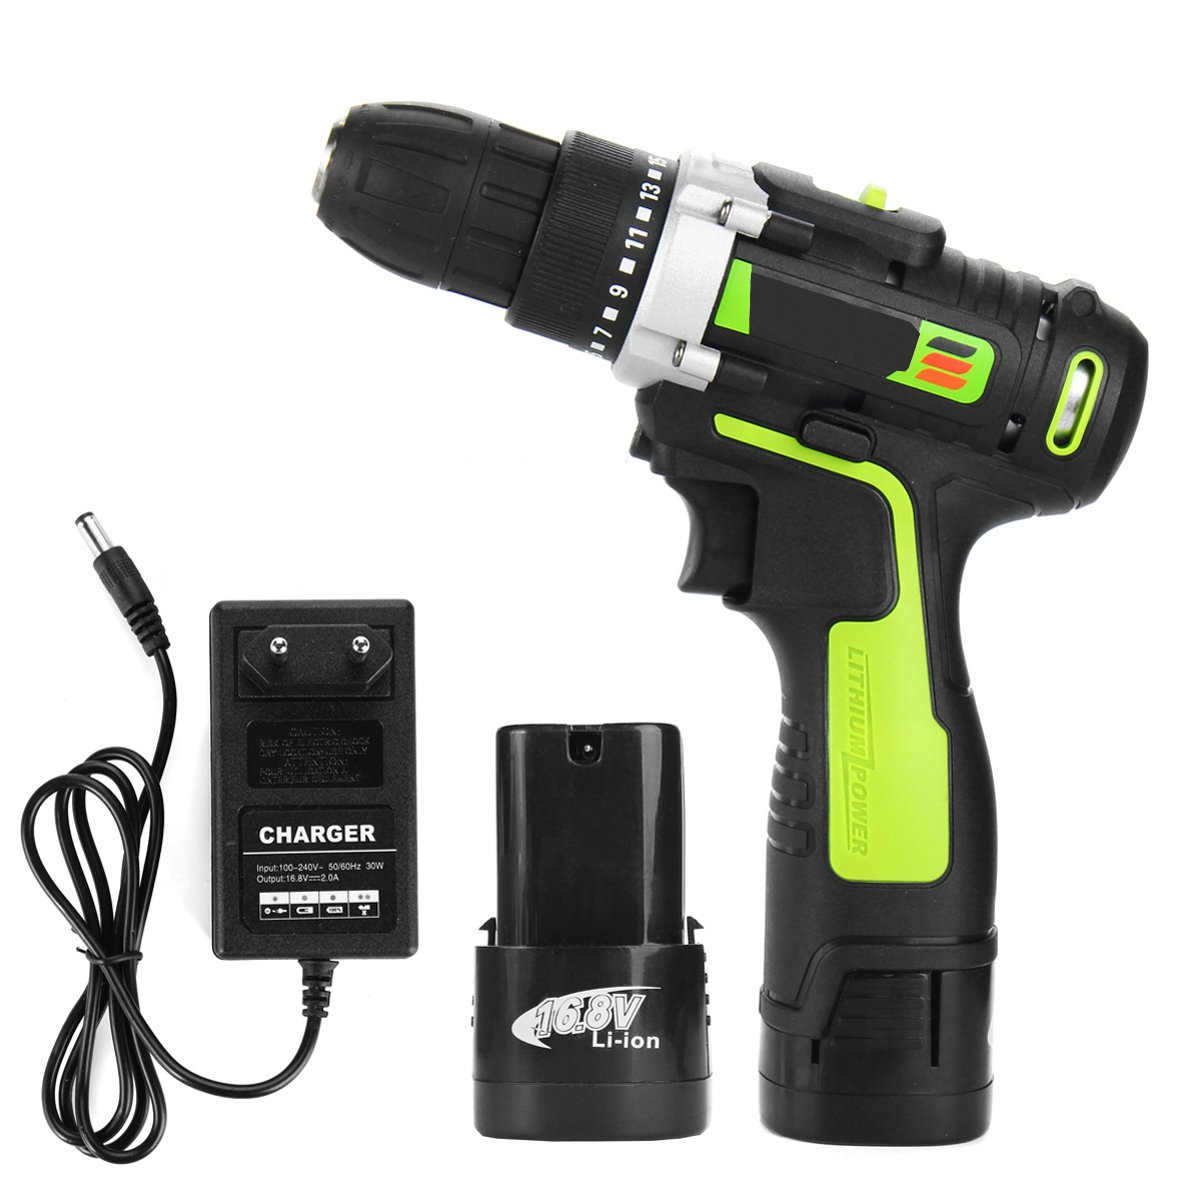 16.8v New Two Speed Rechargeable Lithium Battery Household mini Hand Cordless Drill Electricity driver Electric screwdriver цена